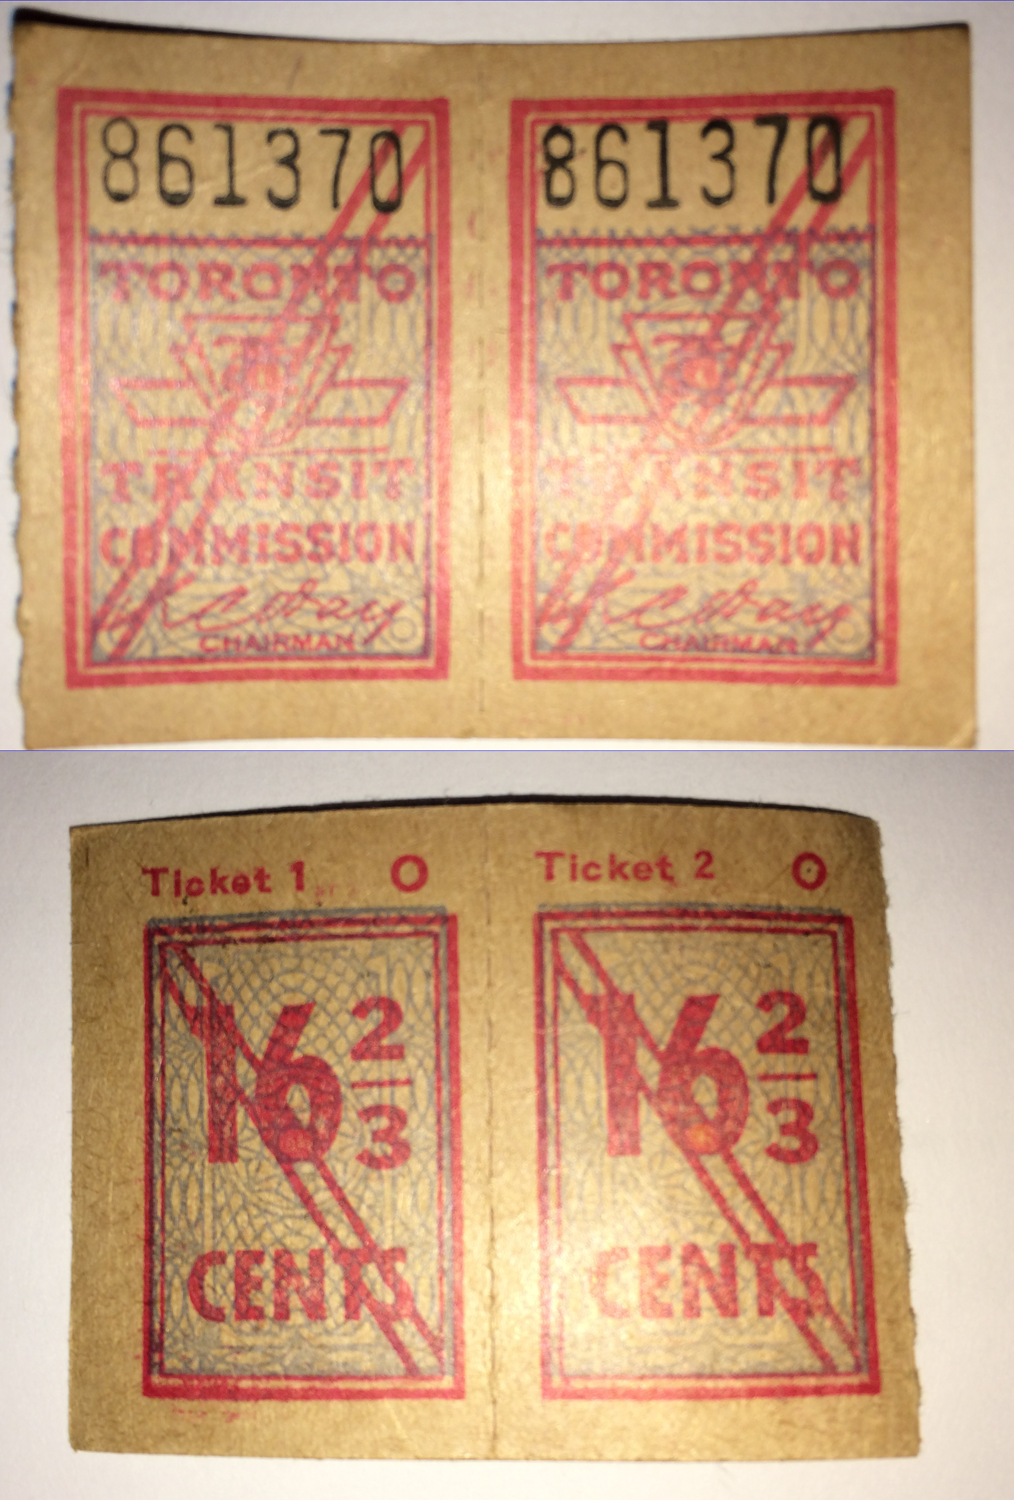 TTC Tickets found in Restored Century Piano